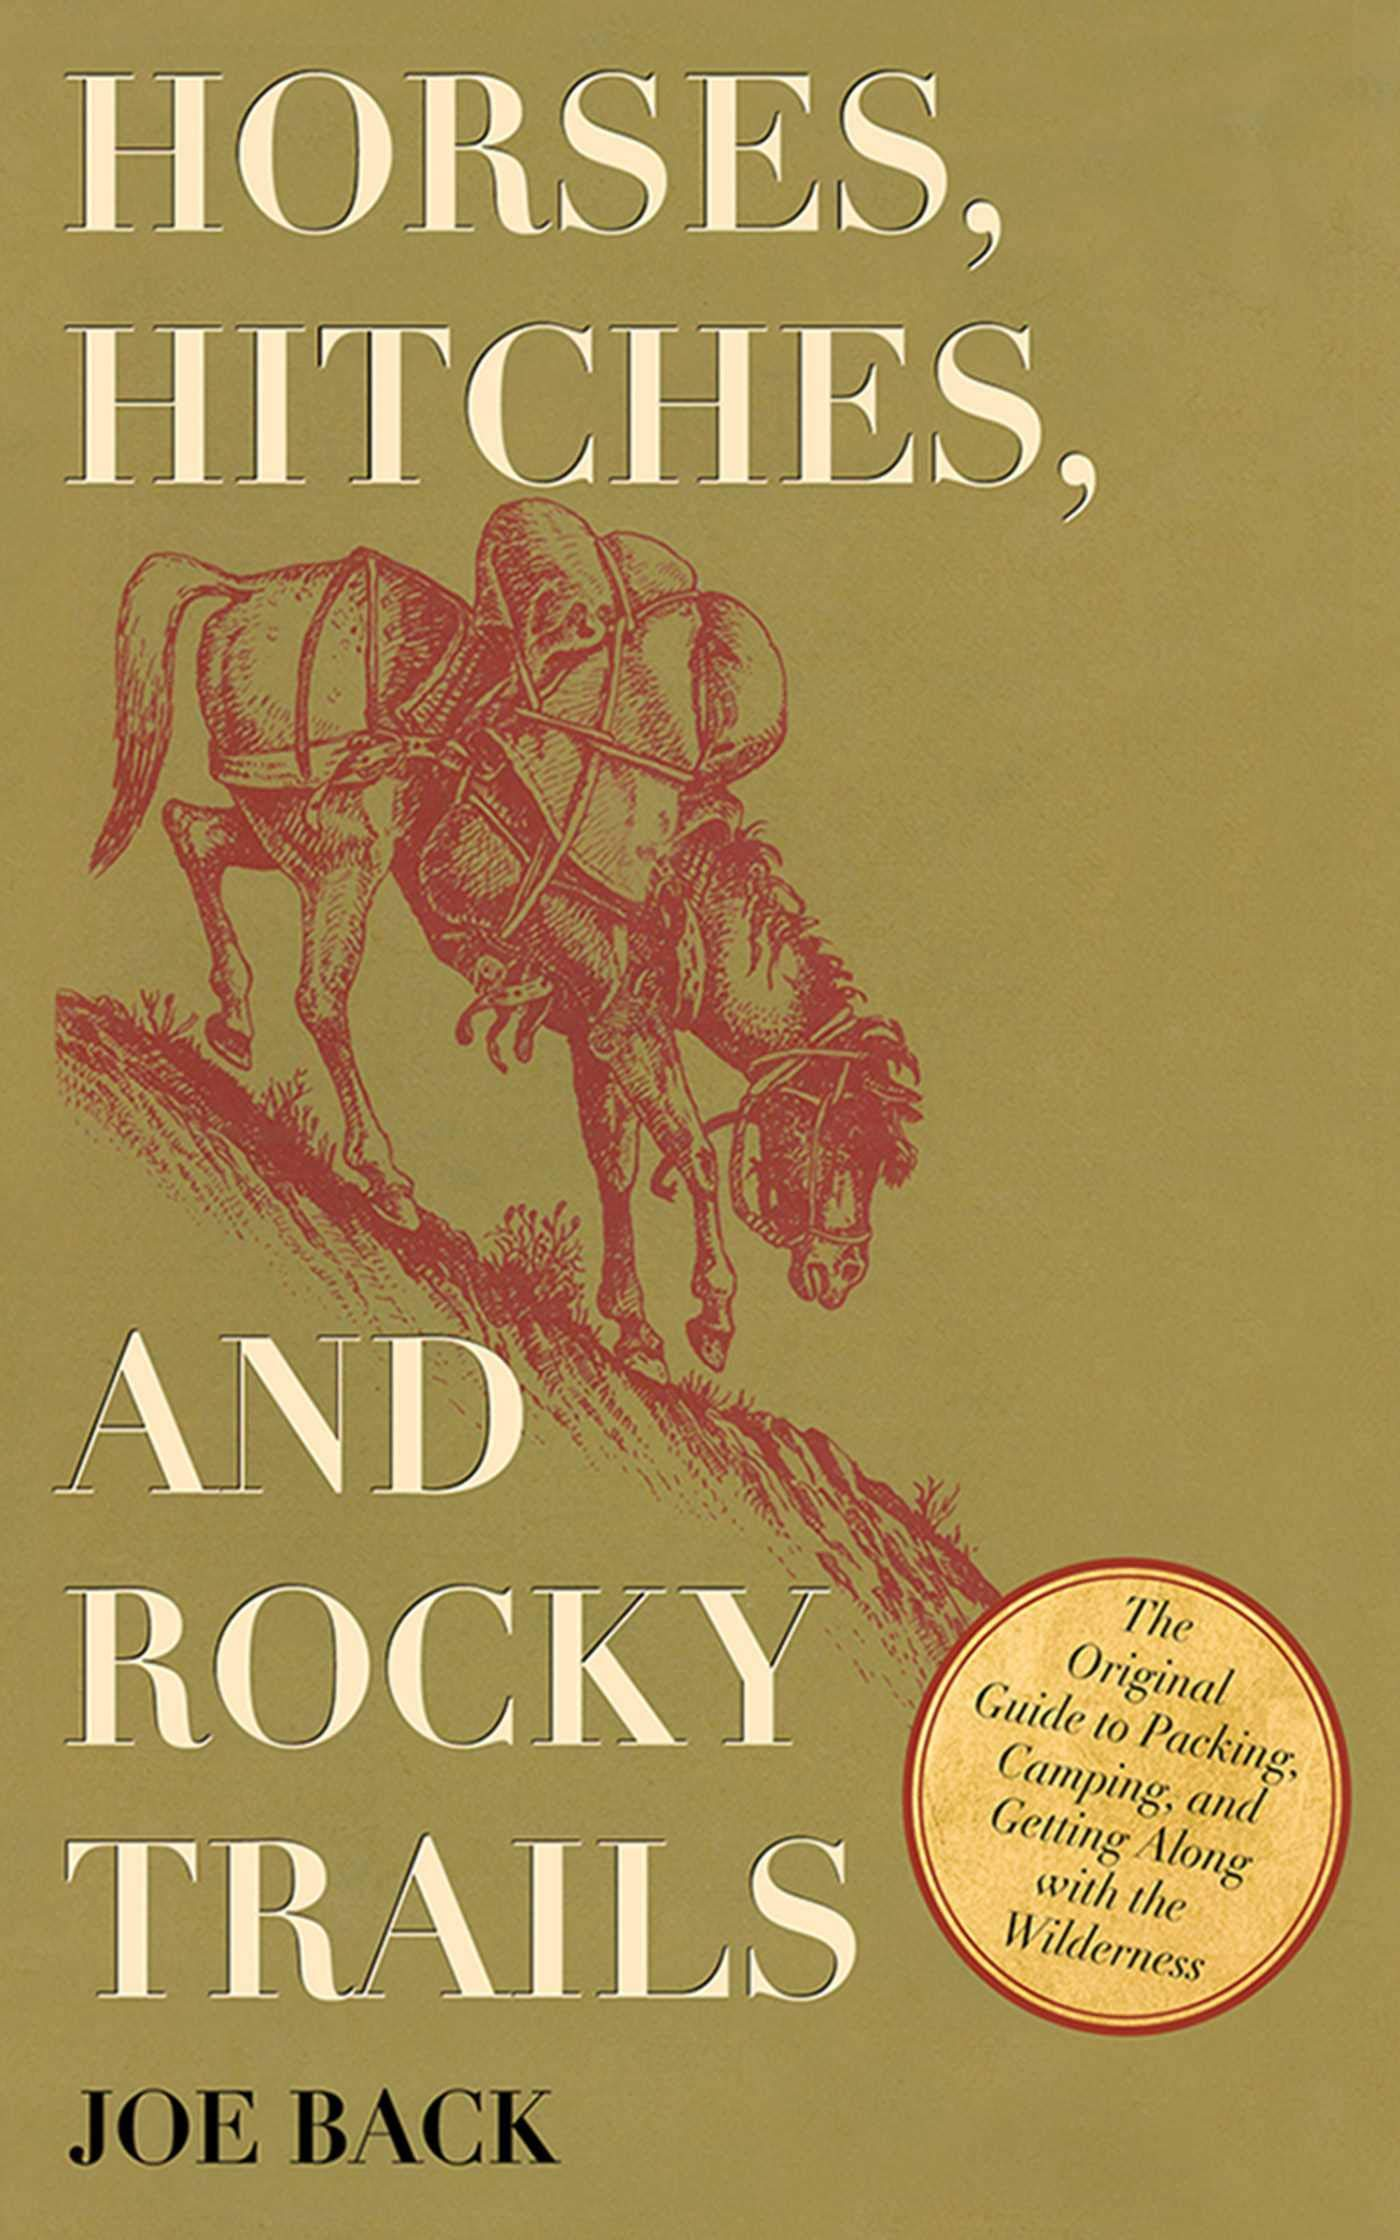 Horses, Hitches, and Rocky Trails: The Original Guide to Packing, Camping, and Getting Along with the Wilderness by Skyhorse